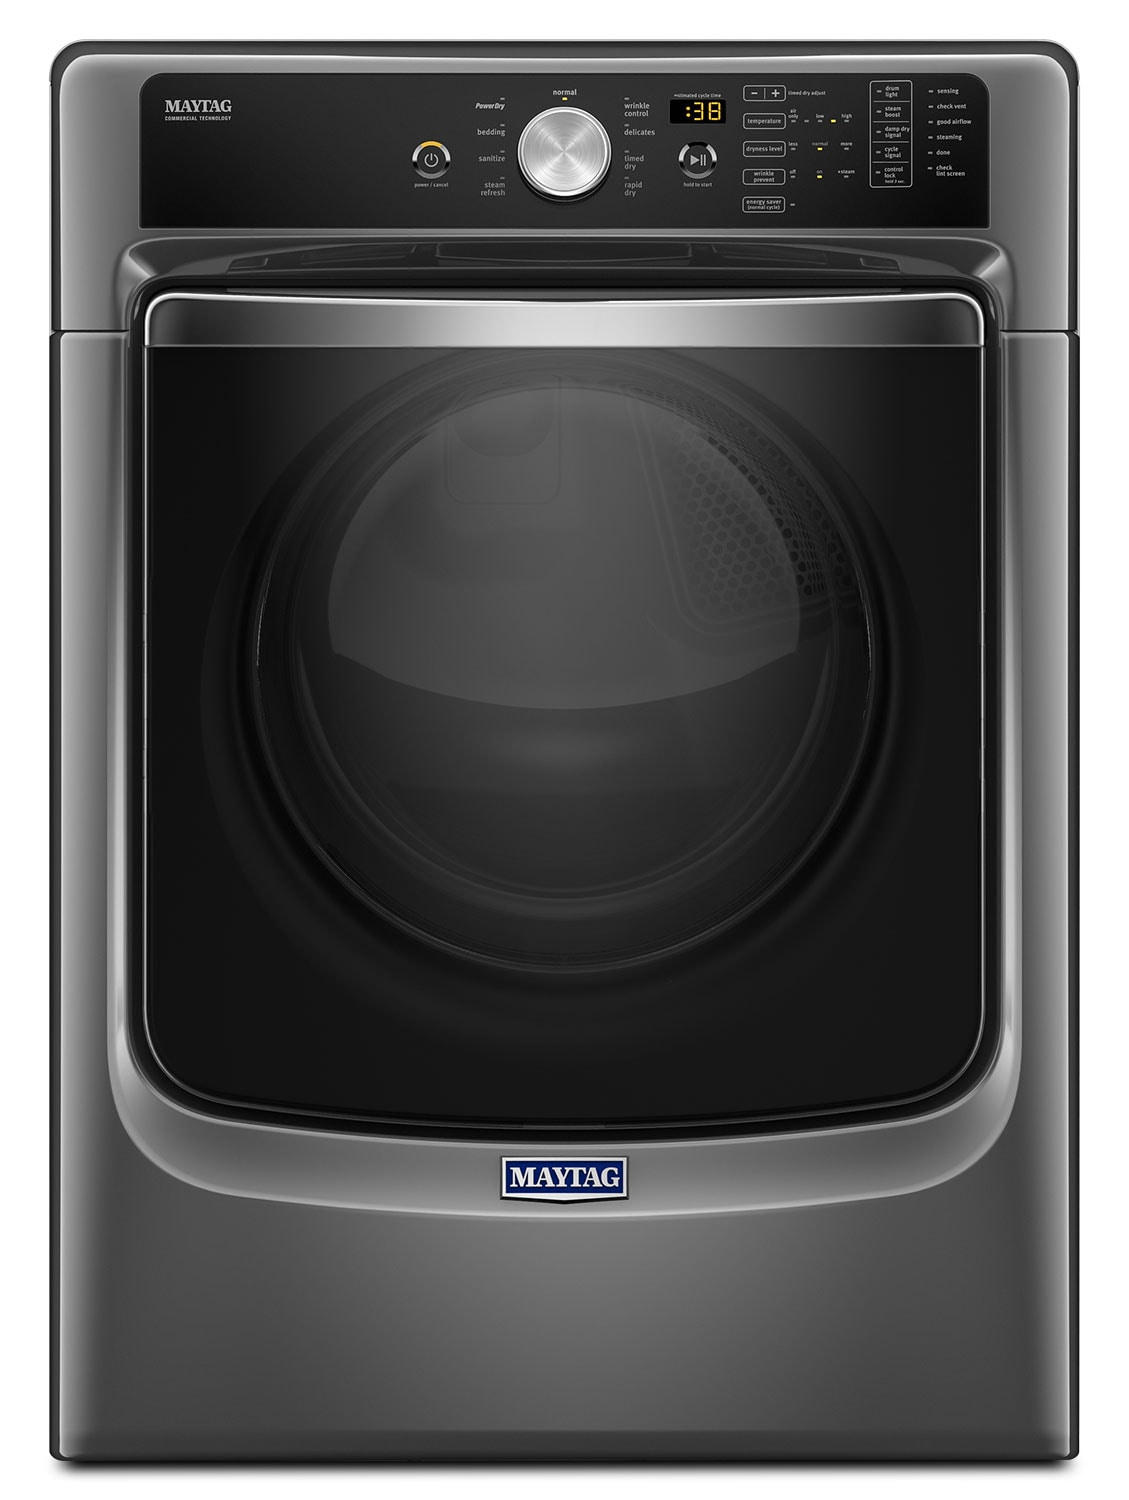 Maytag Metallic Slate Gas Dryer (7.4 Cu. Ft.) - MGD5500FC